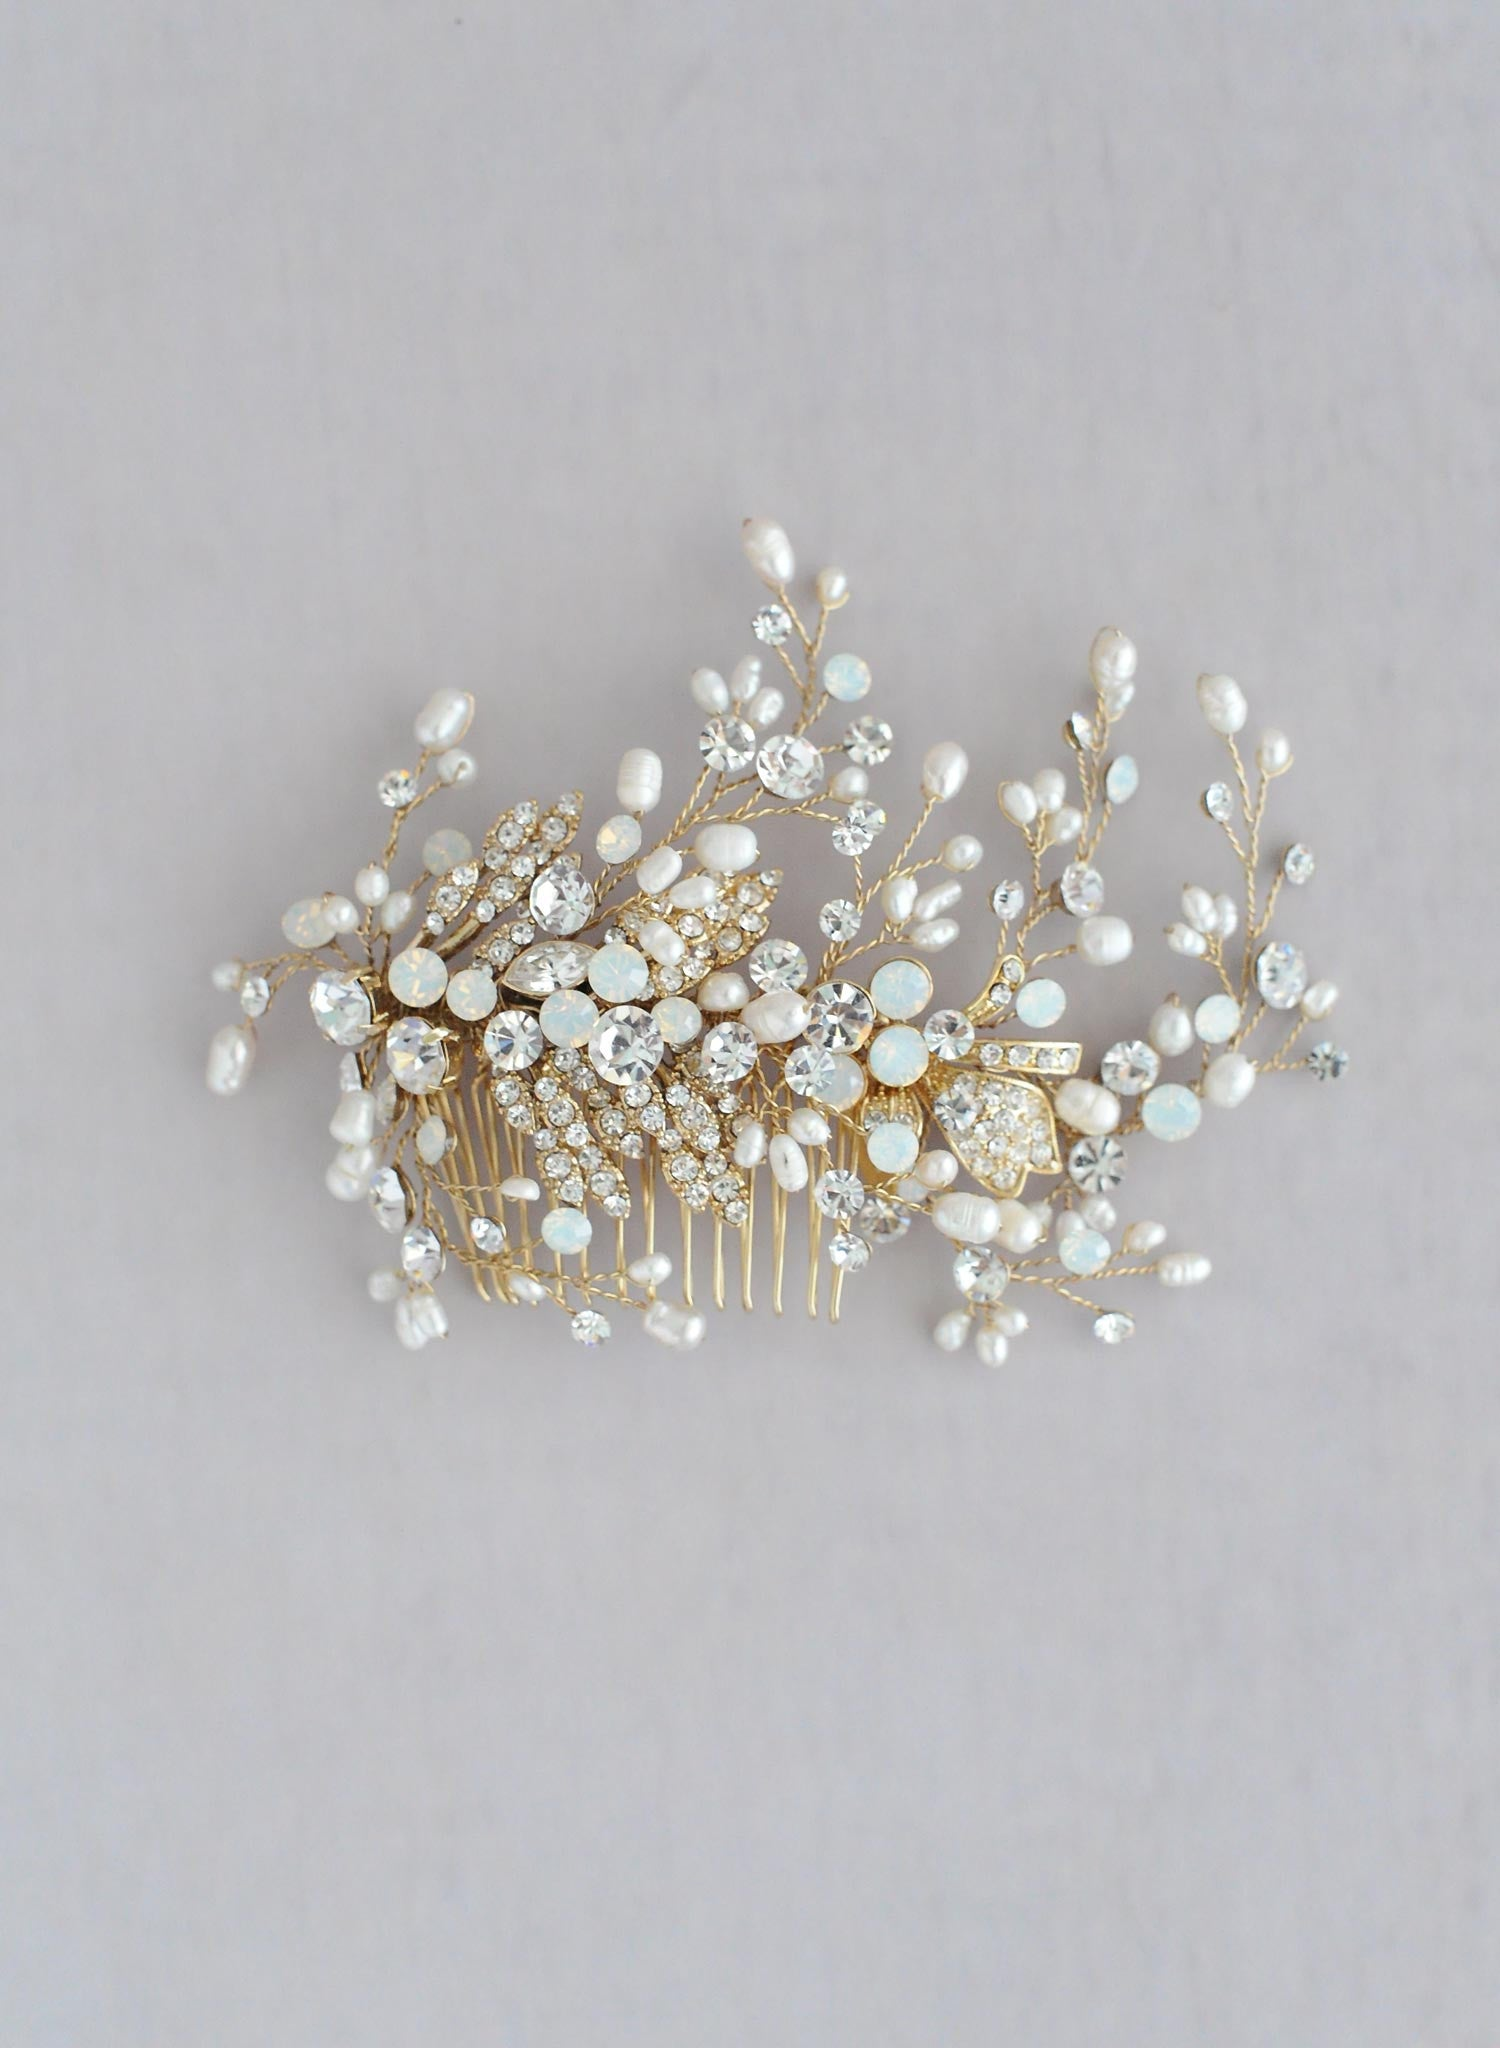 White opal and crystal, pearl spray comb - Style #601